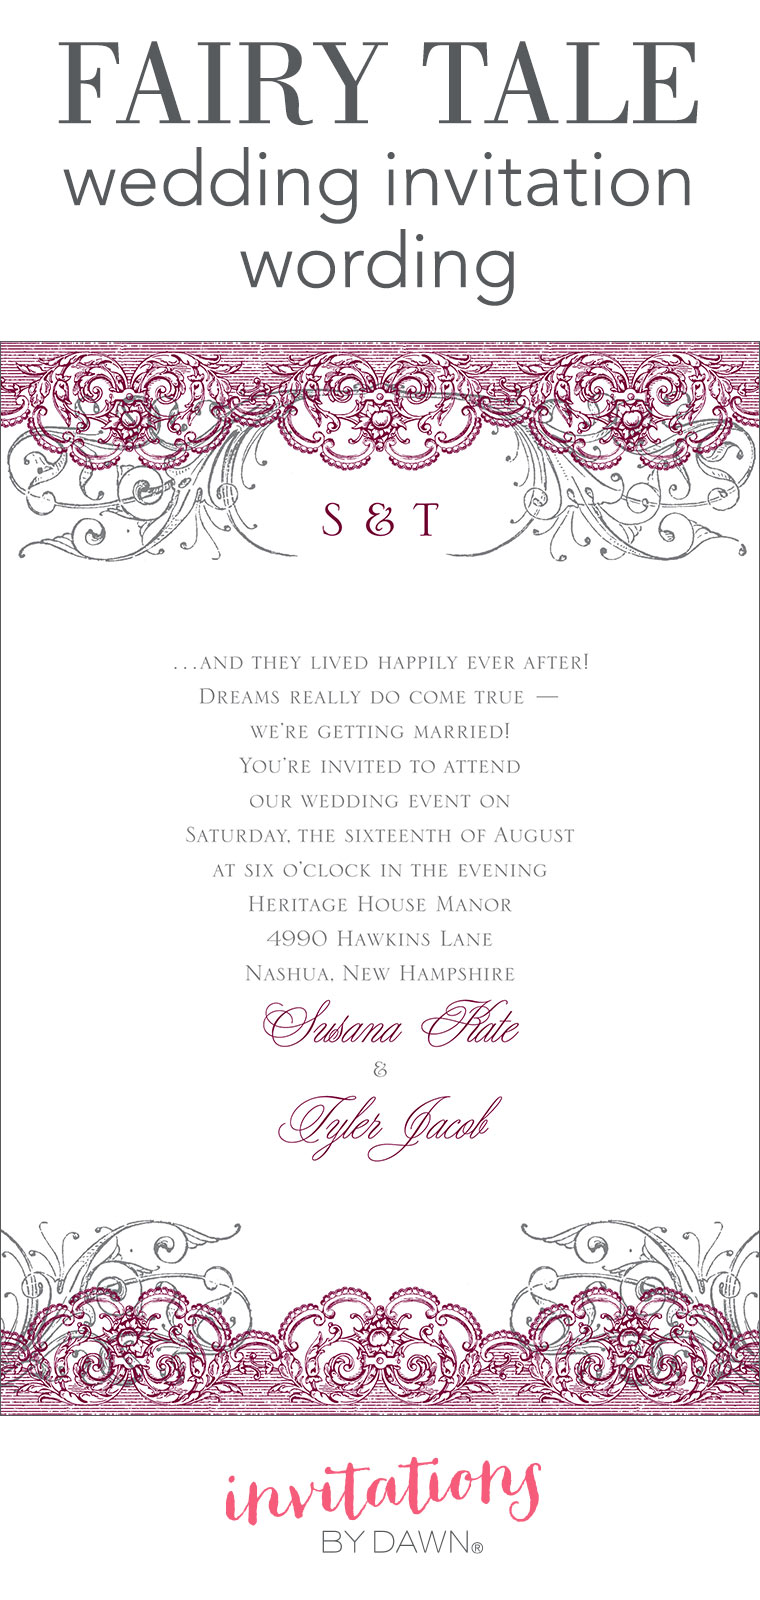 Wording For Wedding Invitations.Fairy Tale Wedding Invitation Wording Invitations By Dawn